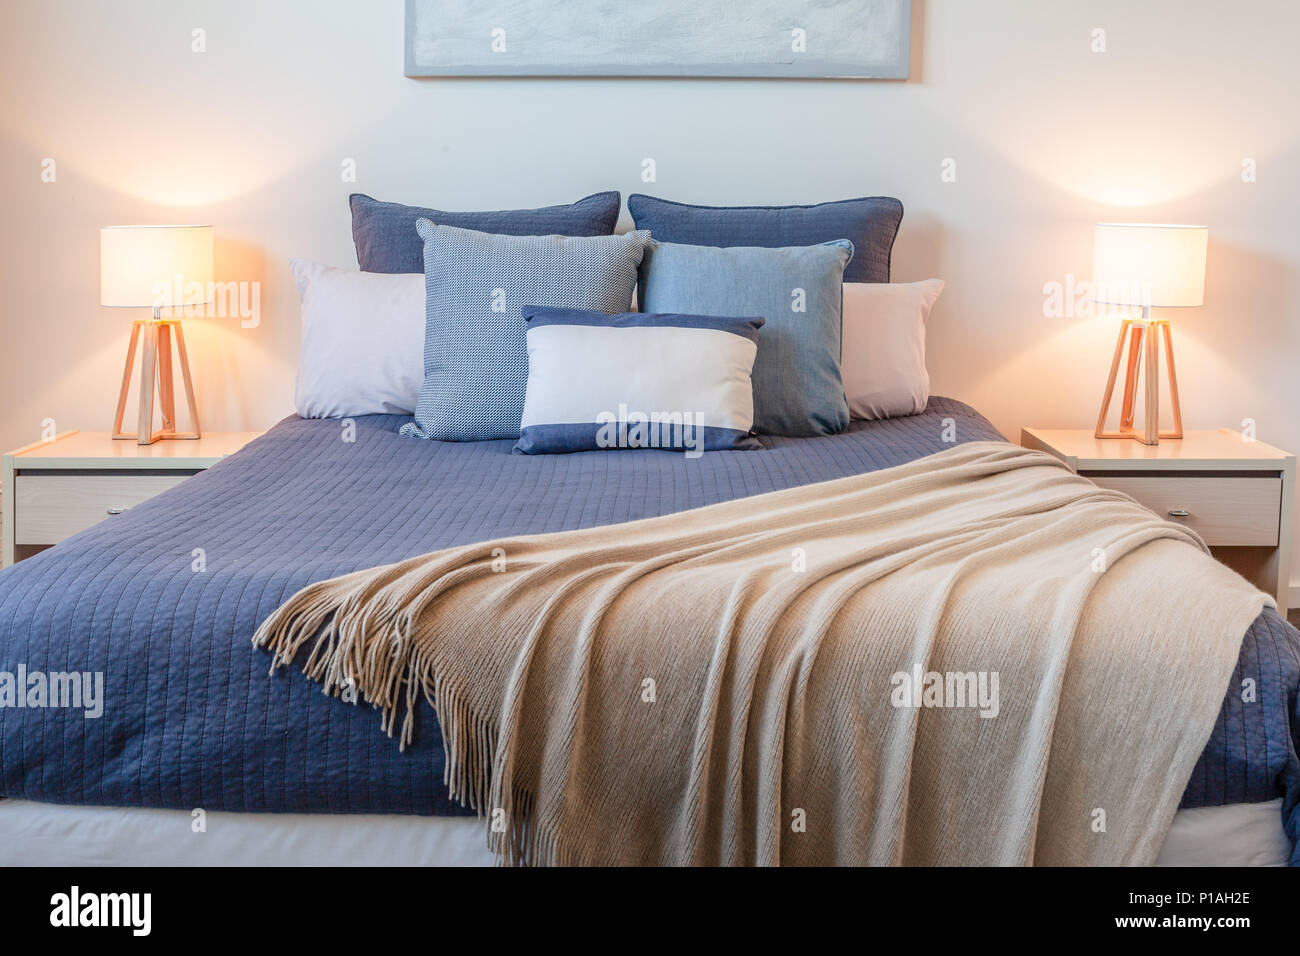 Beautiful Lamps For Bedroom Beautiful Arrangement Of Pillows On Bed In A Bedroom With Bedside